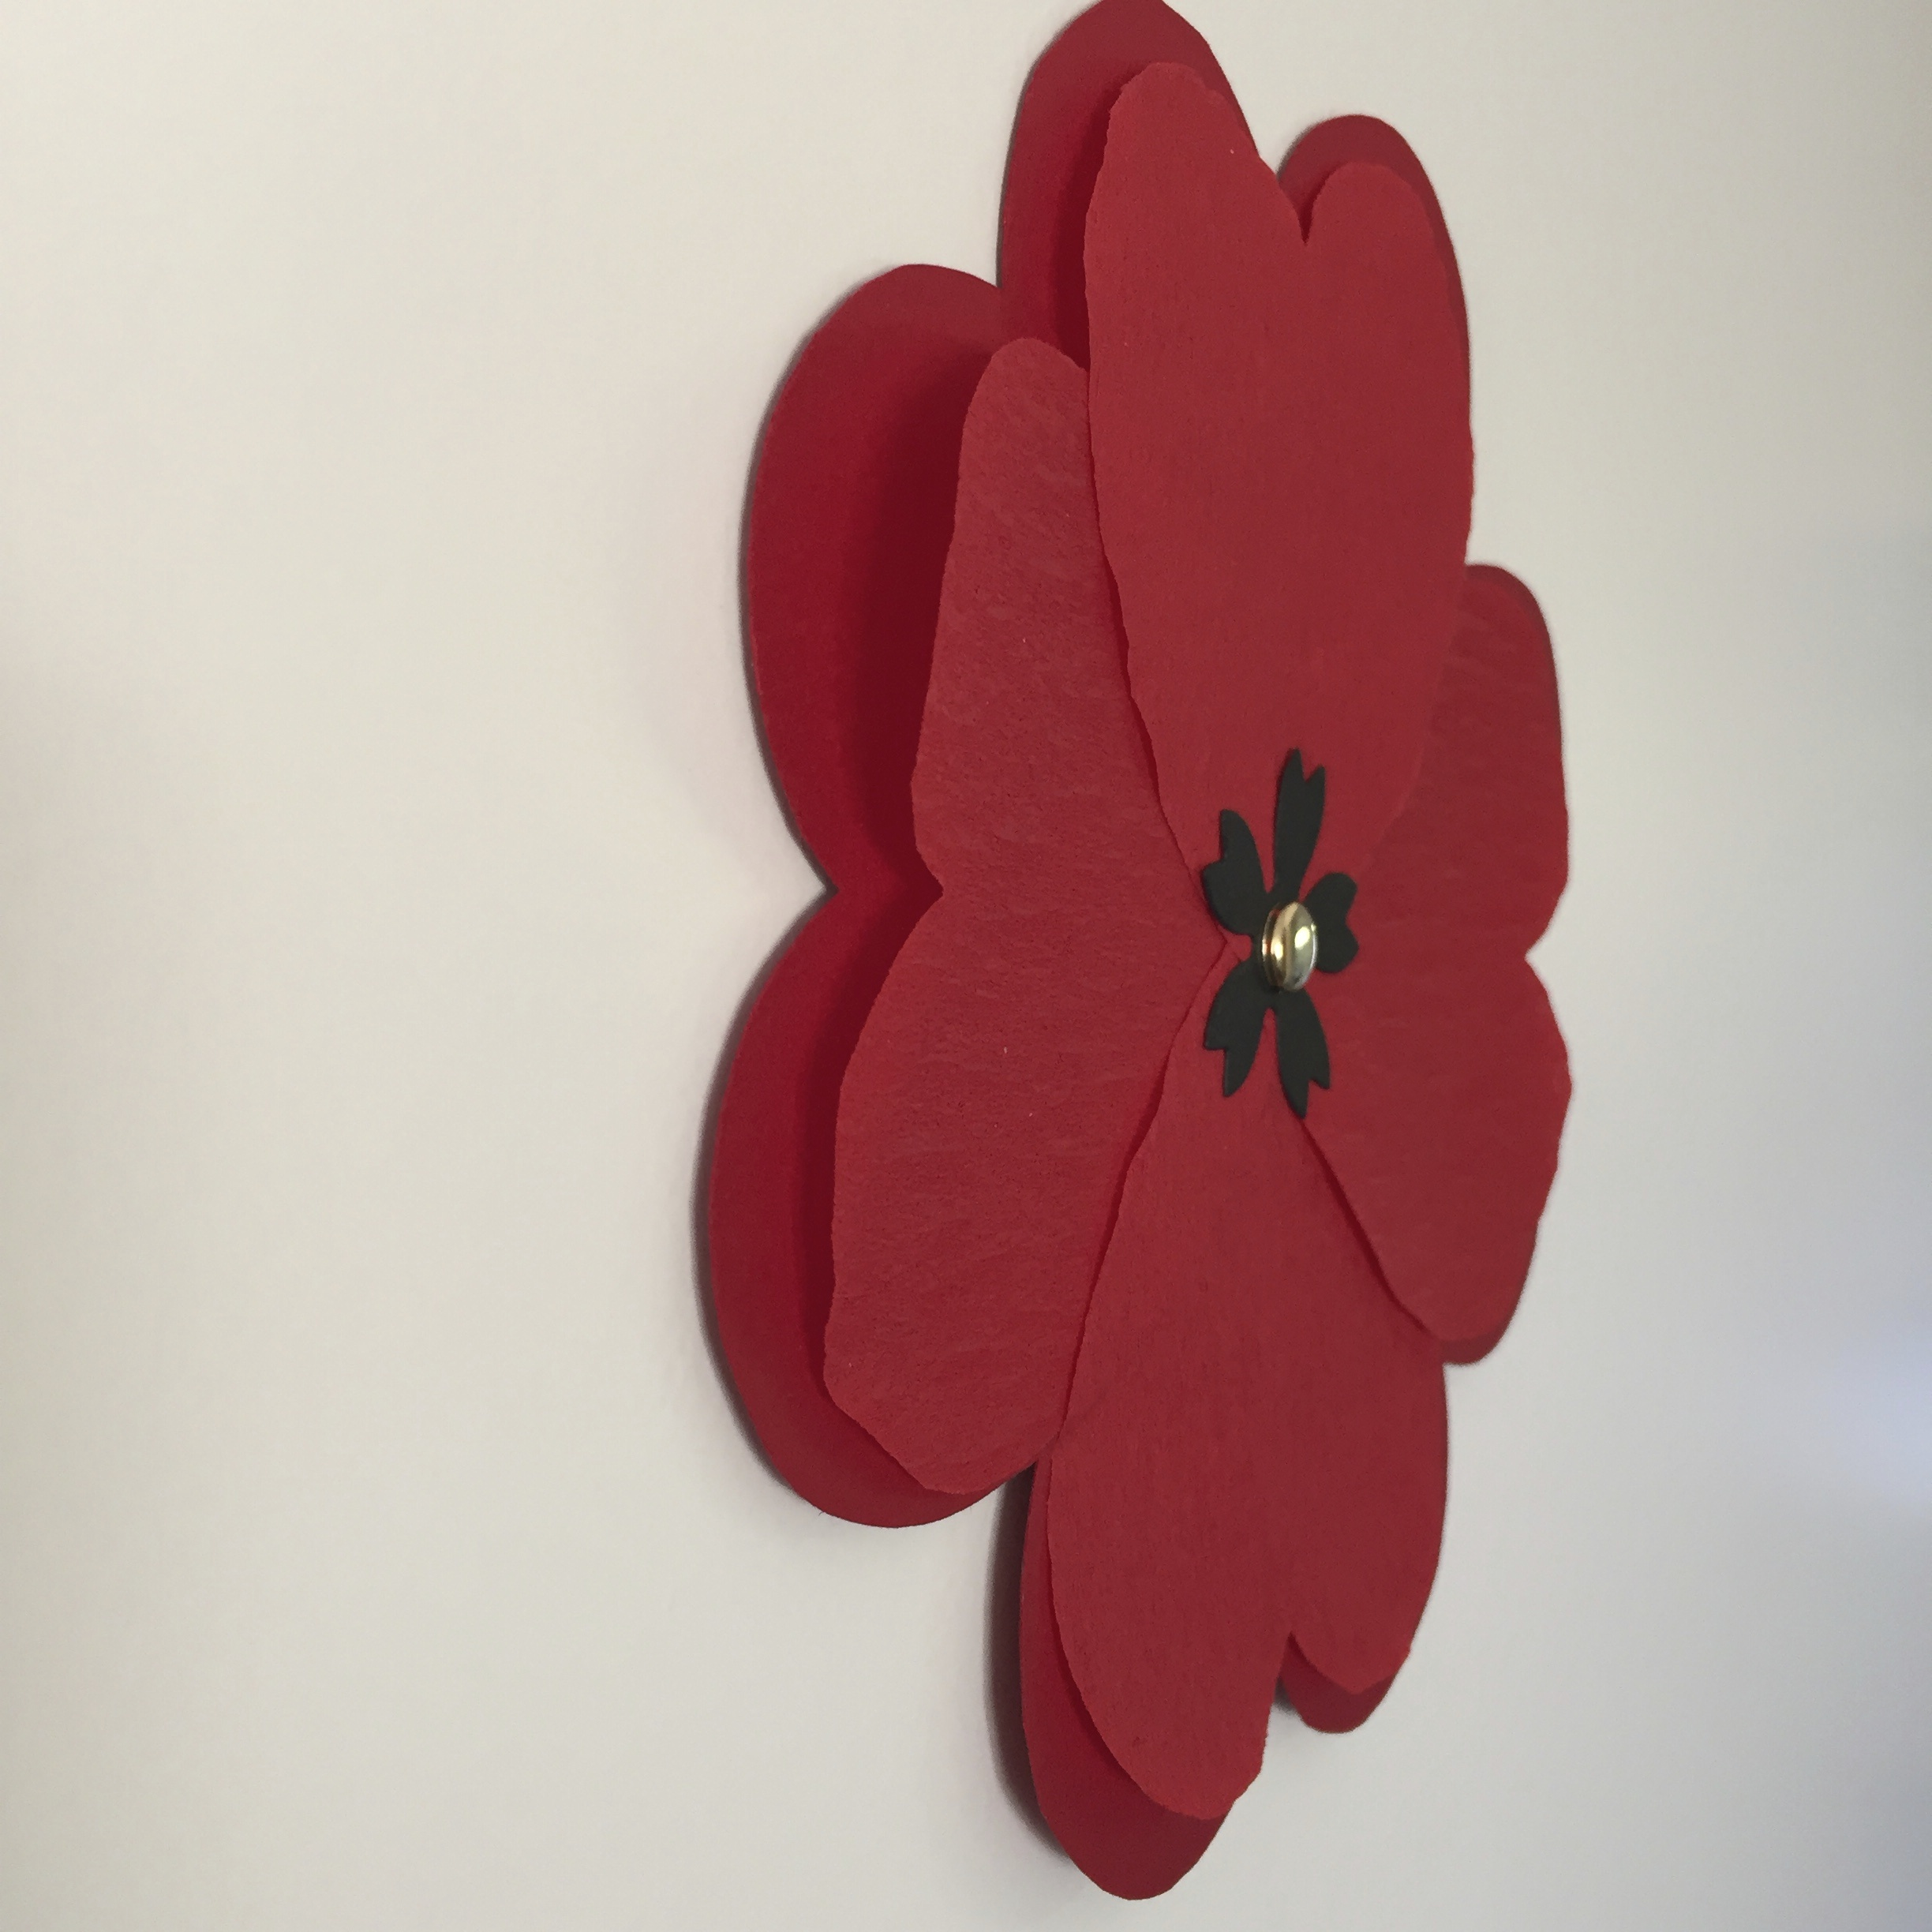 Making Paper Poppies